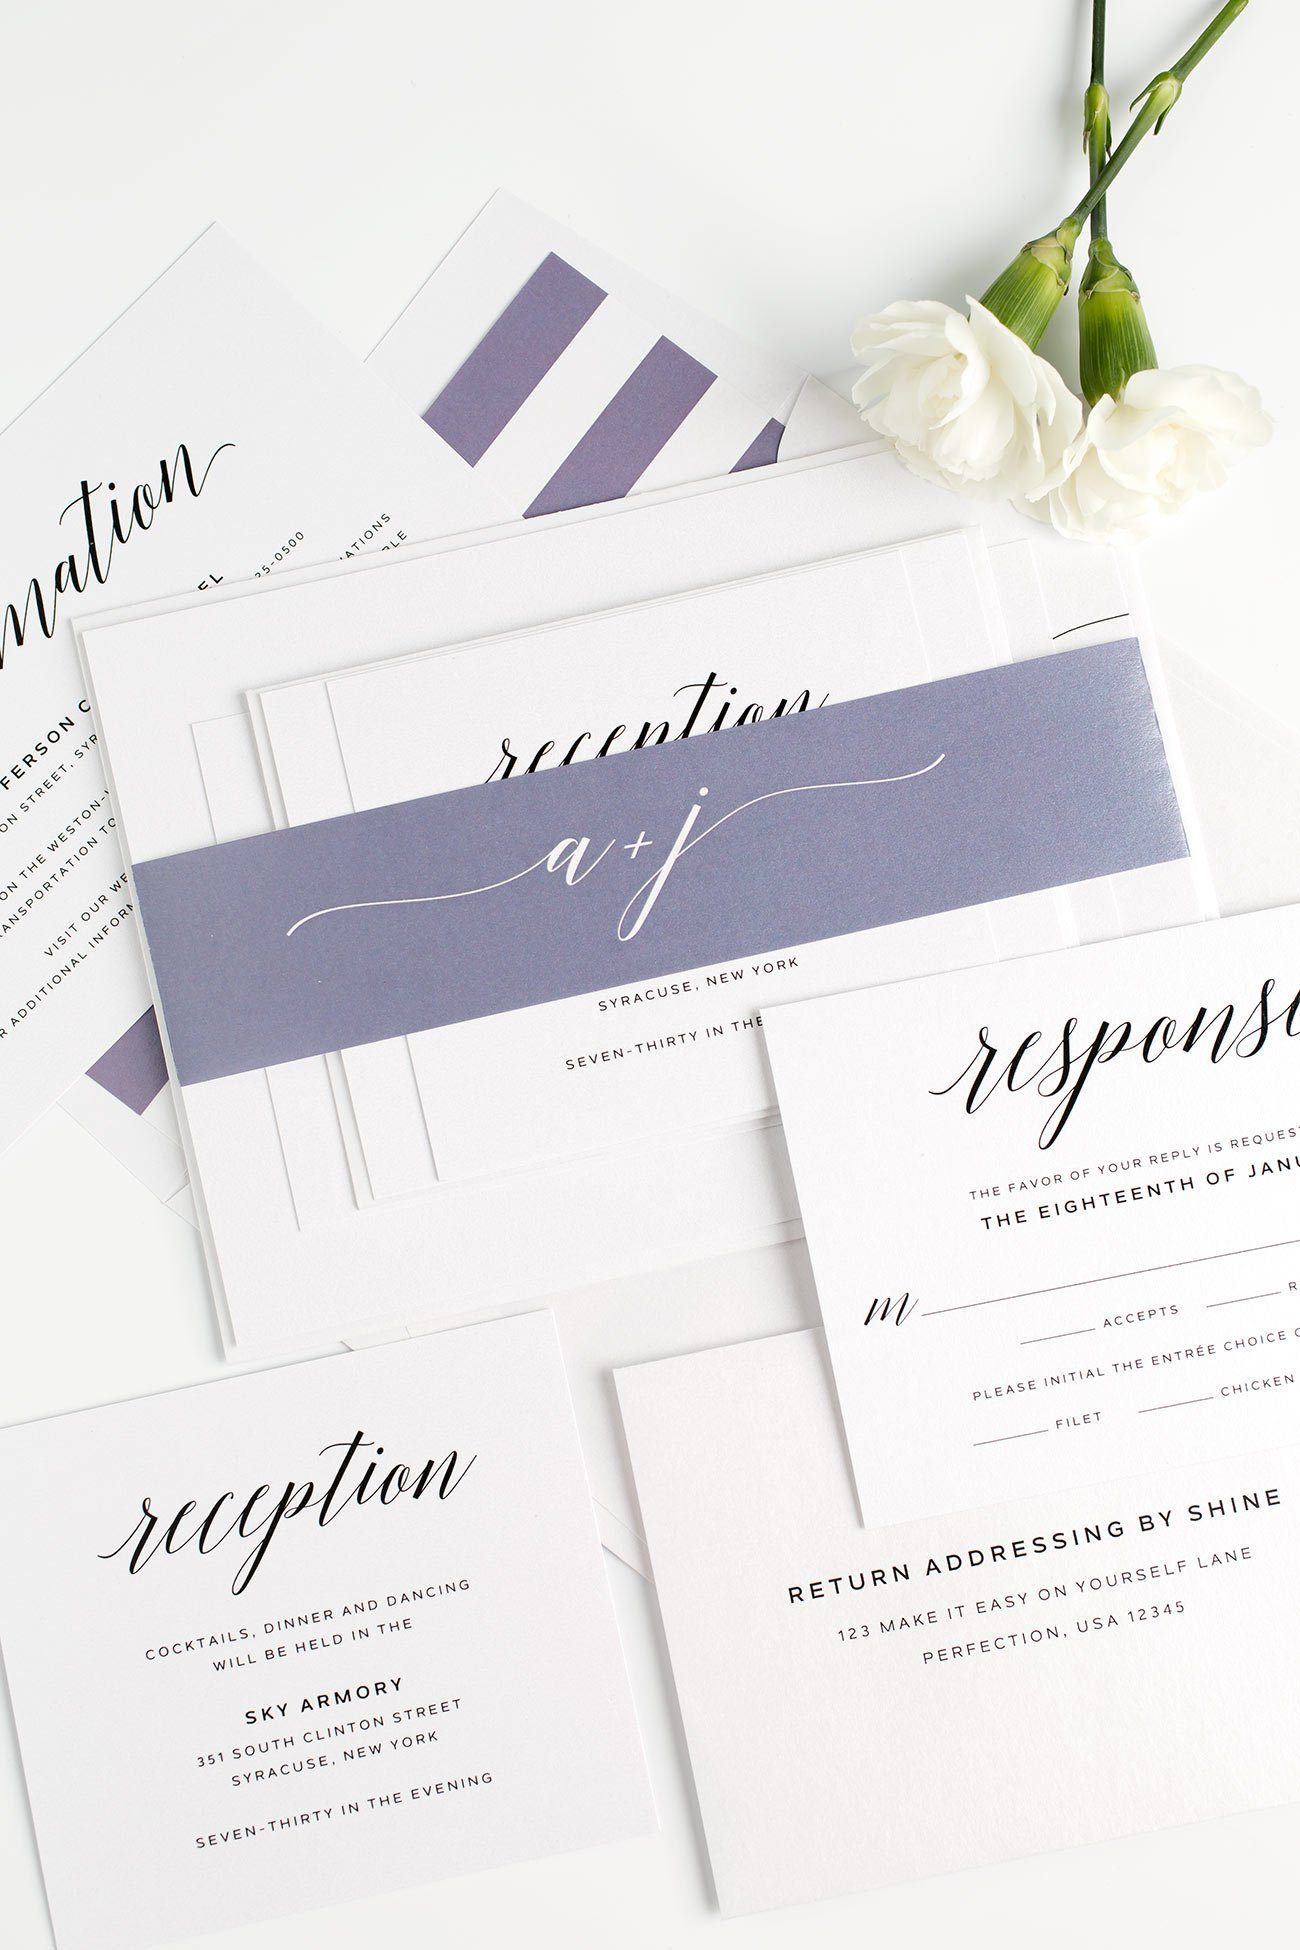 Romantic Wedding Invitations in Dusty Purple with Flowing Calligraphy